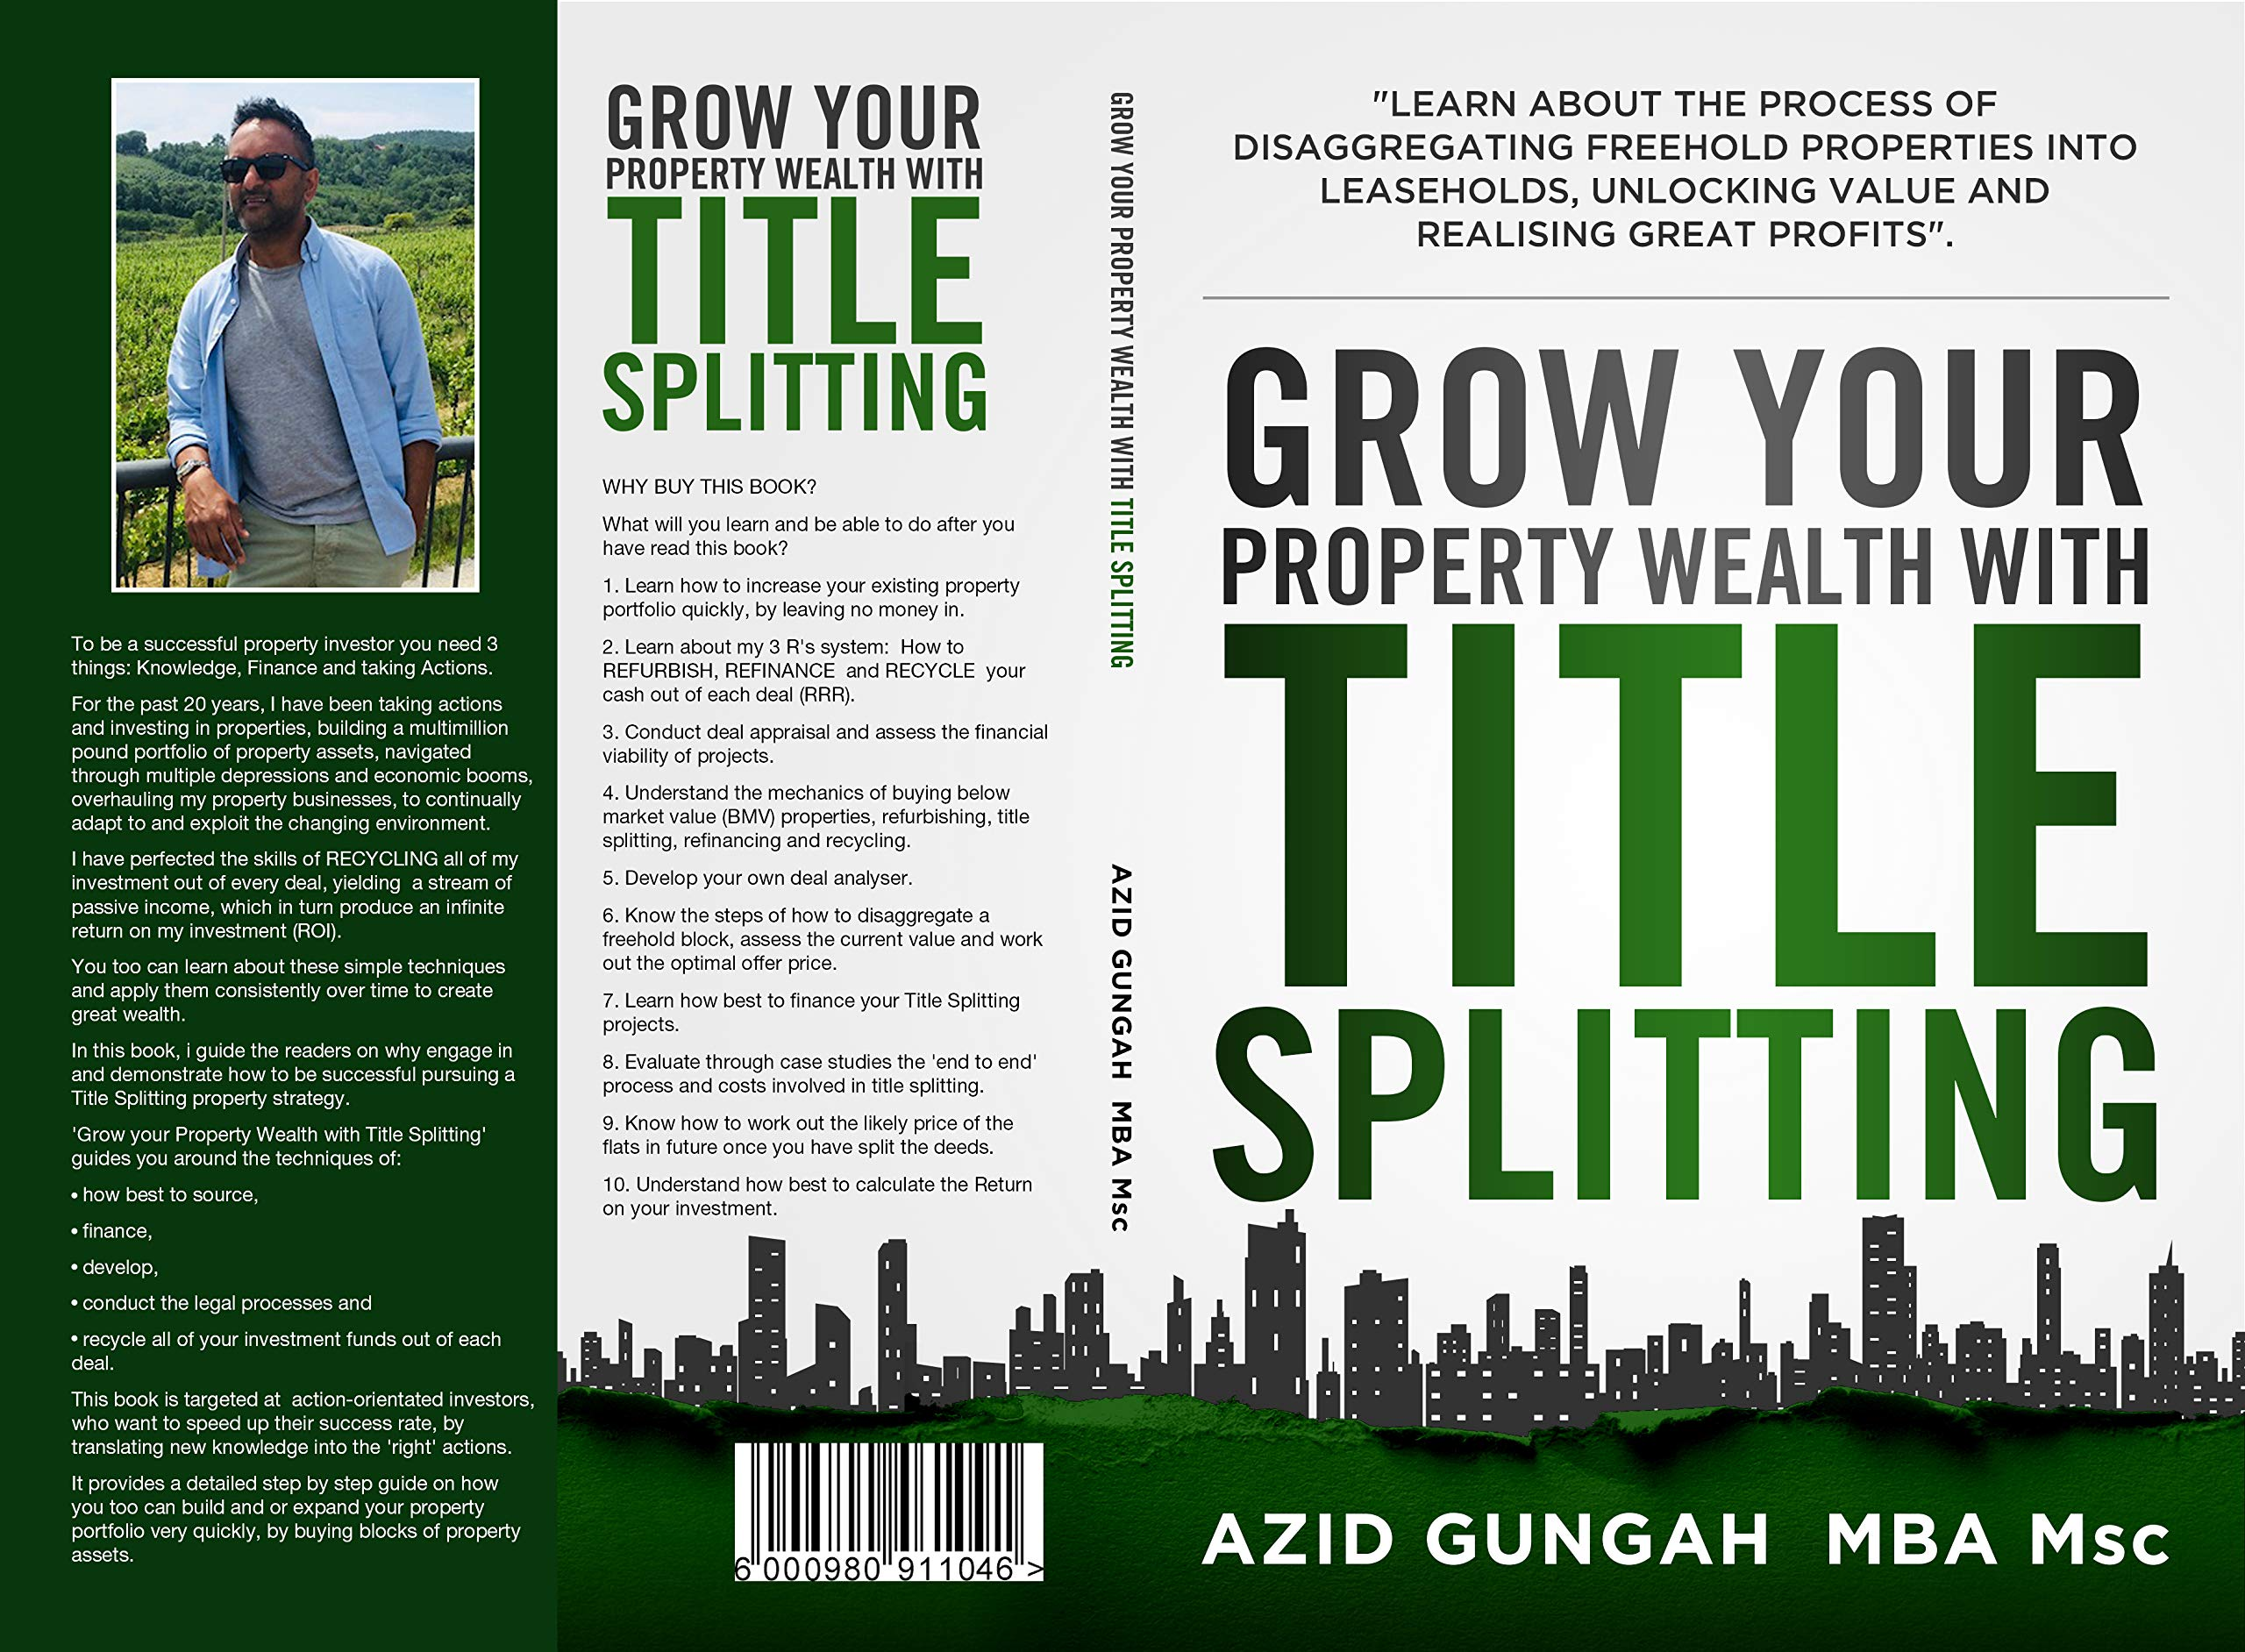 Property Investing: Grow your Property Wealth with Title Splitting: Learn about the process of disaggregating freehold properties into leaseholds, unlocking value and profits.